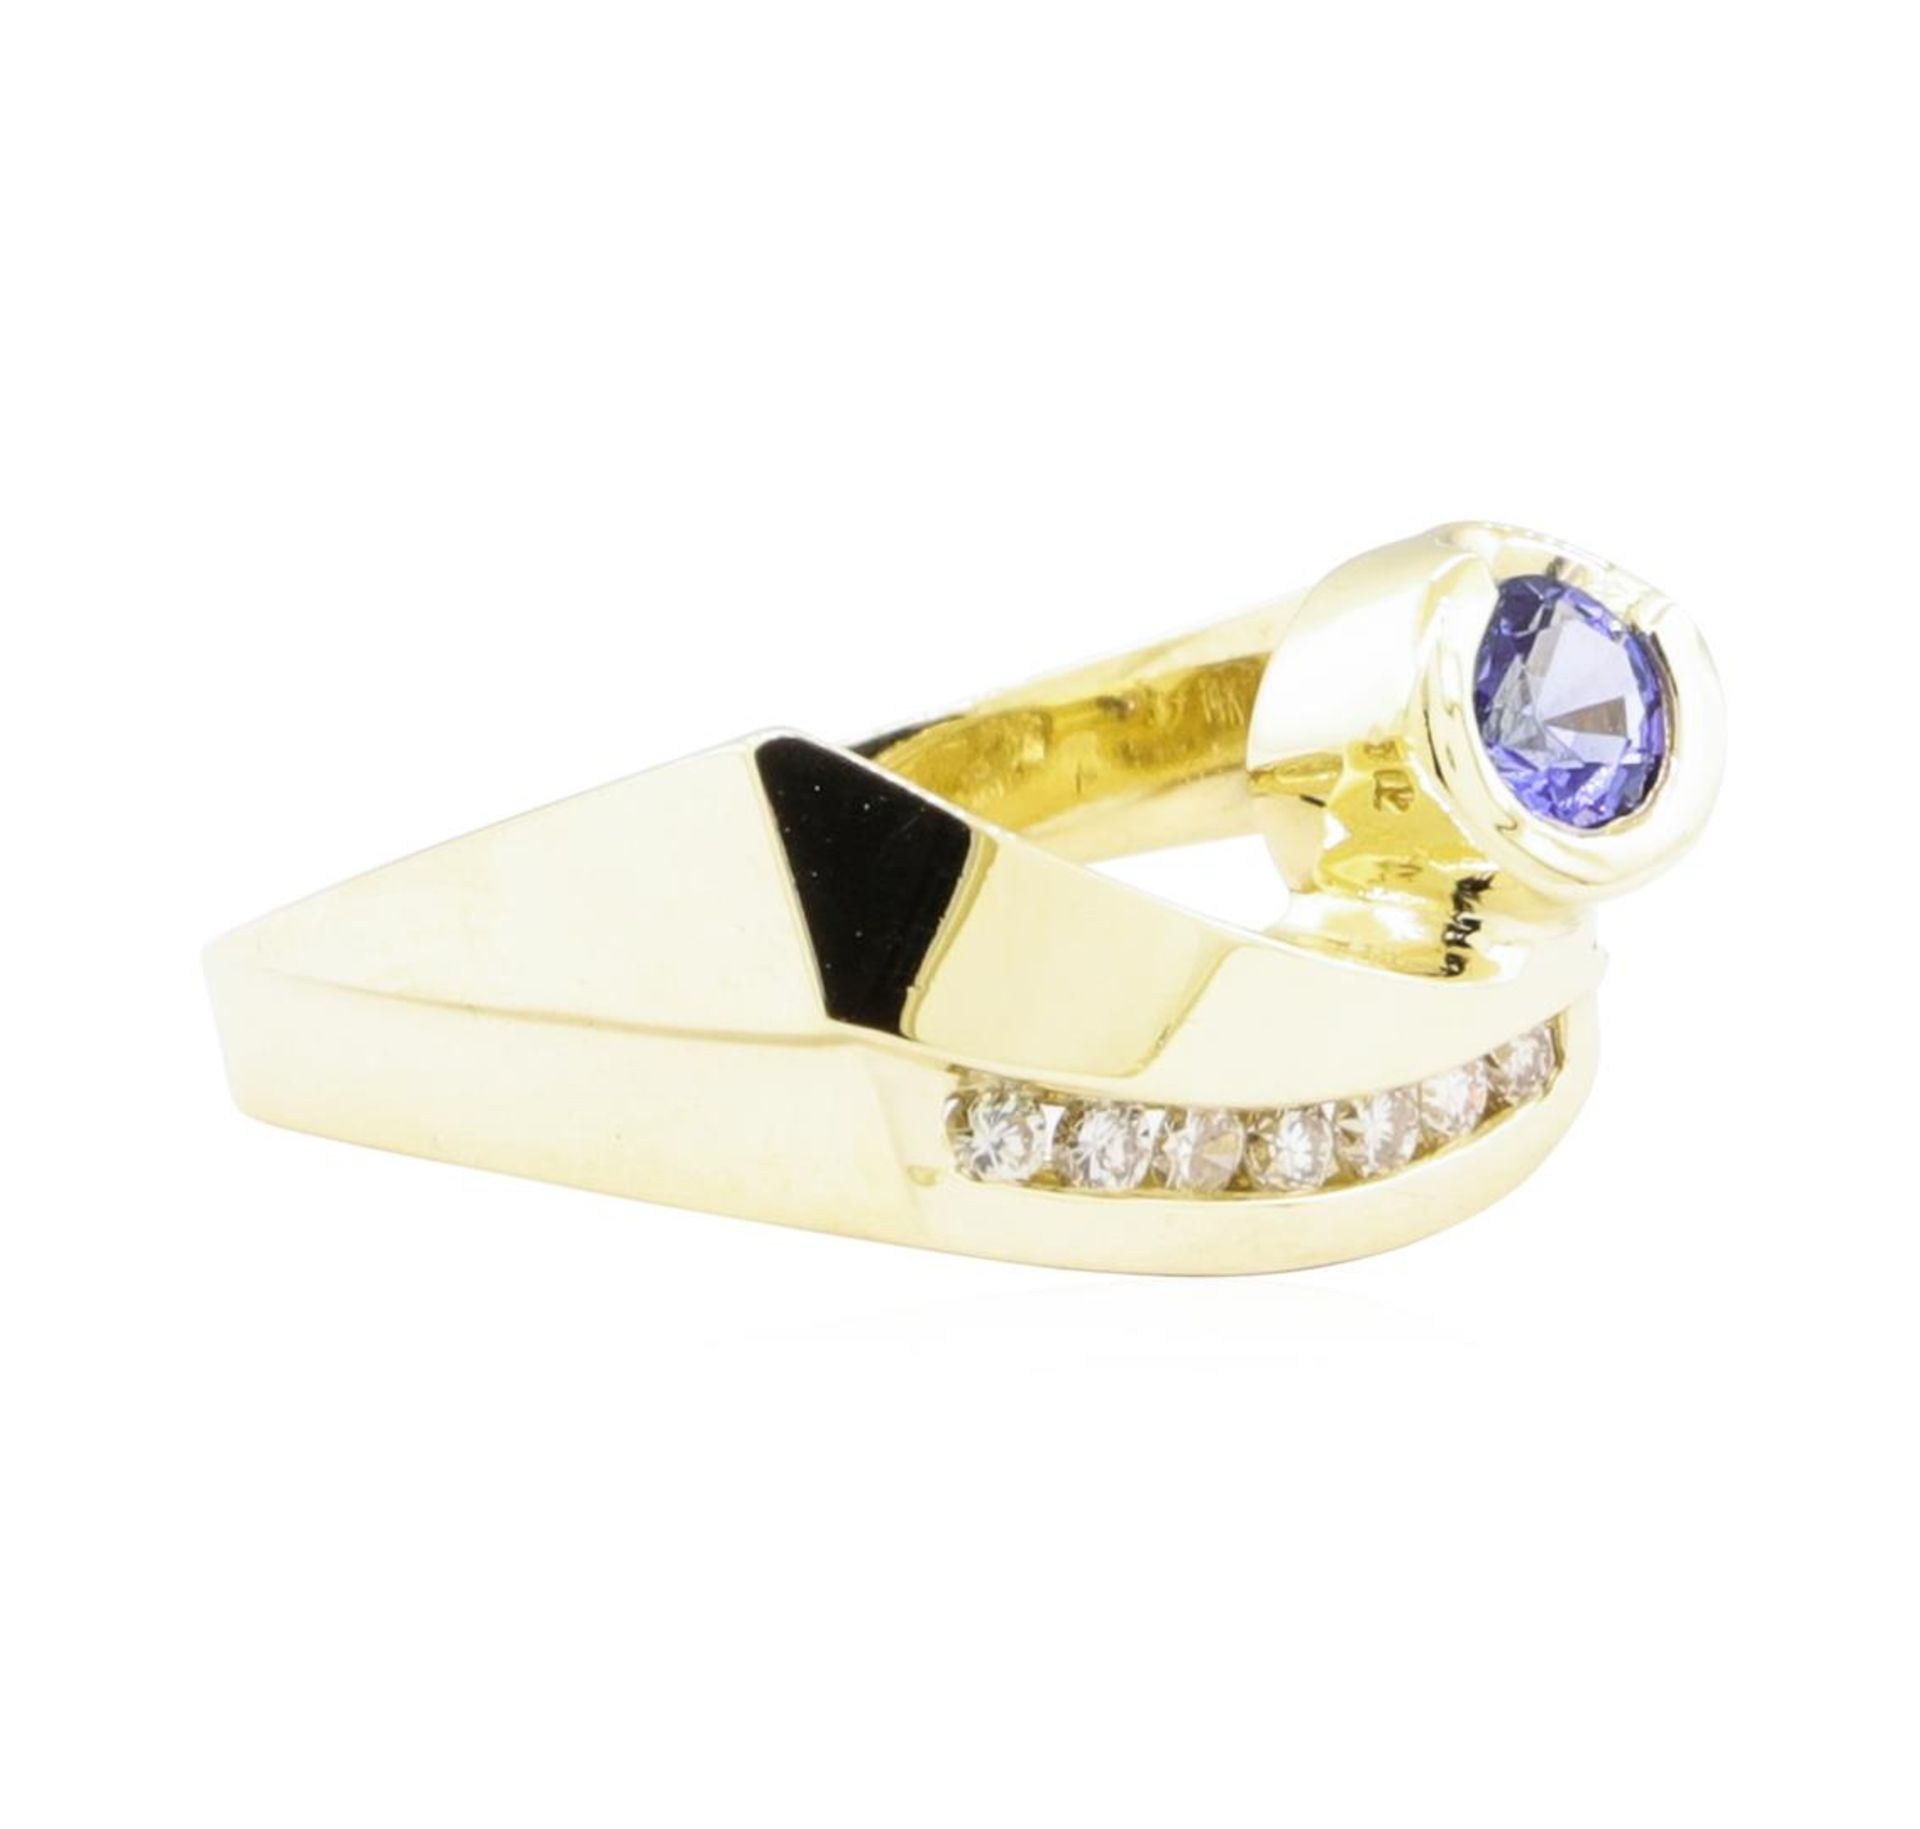 0.55ctw Blue Sapphire and Diamond Ring - 14KT Yellow Gold